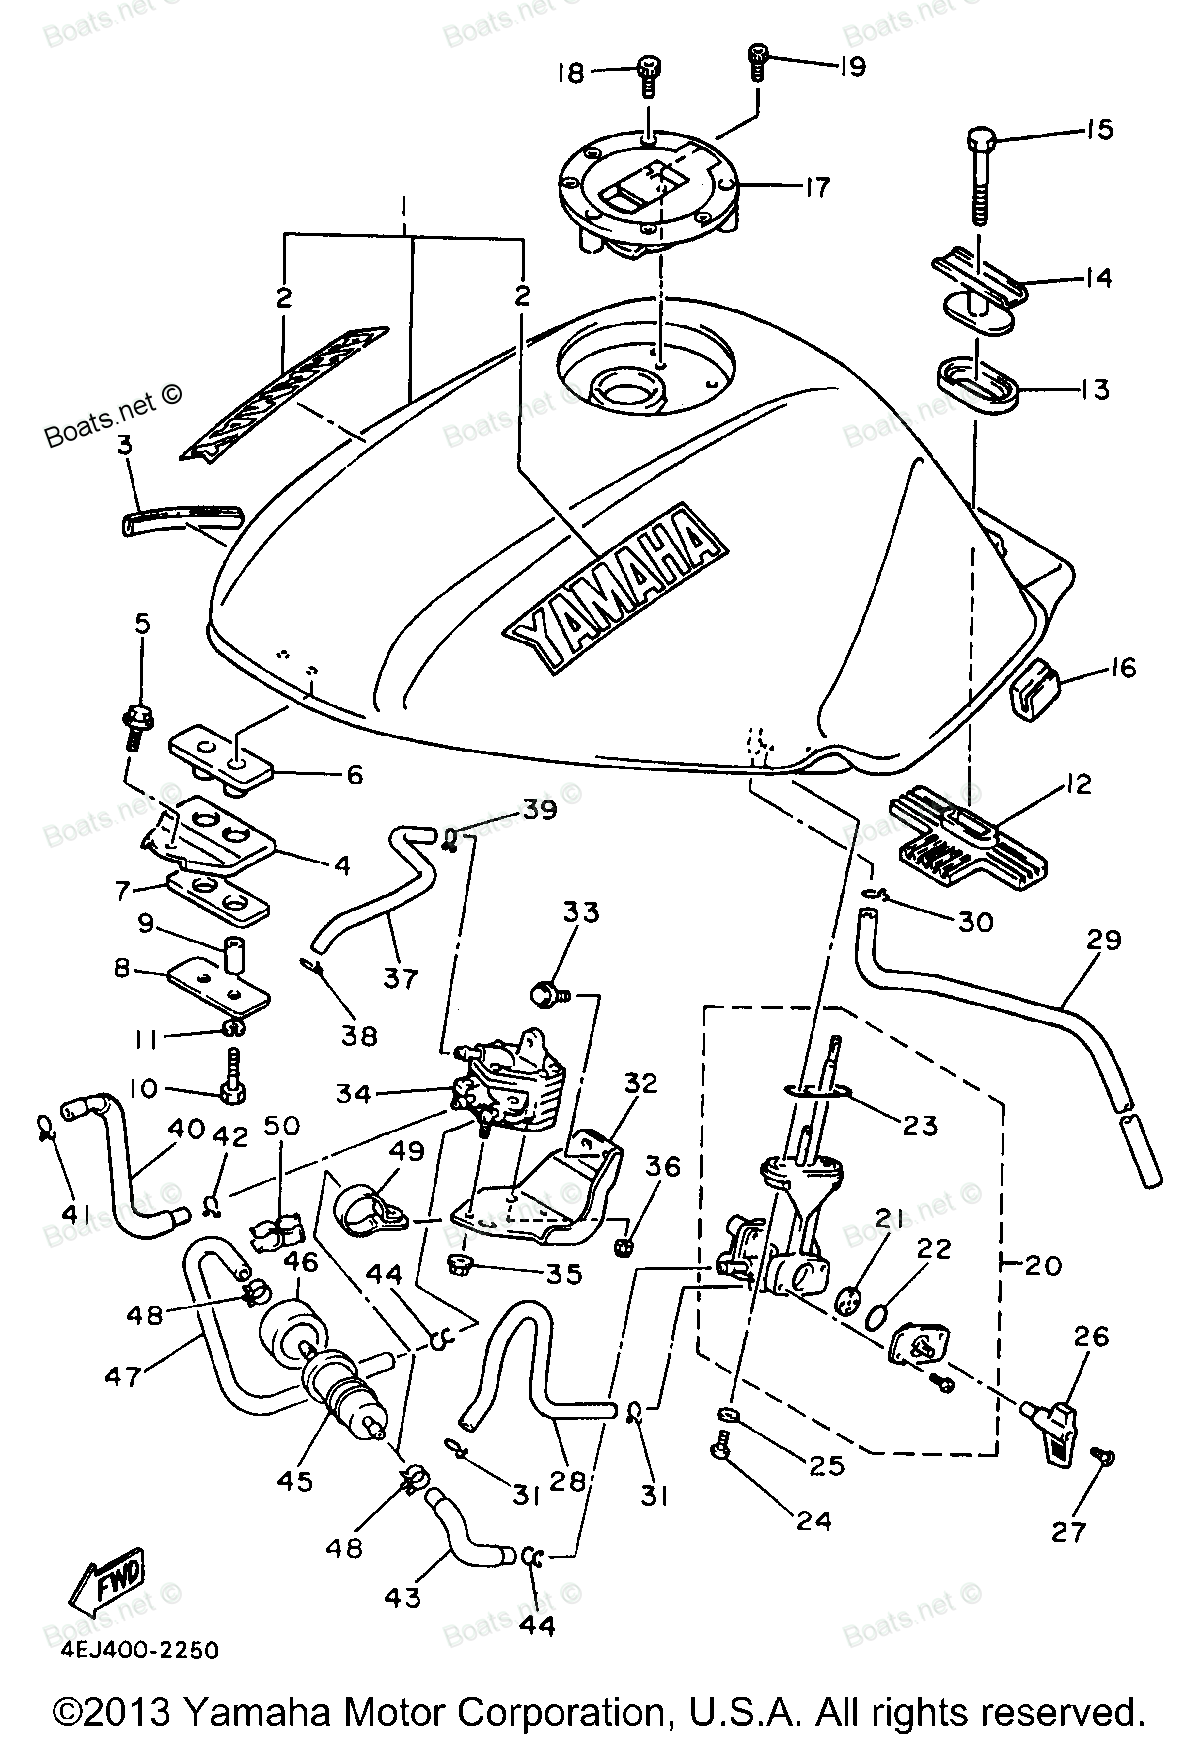 medium resolution of seca 2 yamaha fuel system diagram diagram of 1997 seca ii small engine fuel line sizes motorcycle fuel line diagram